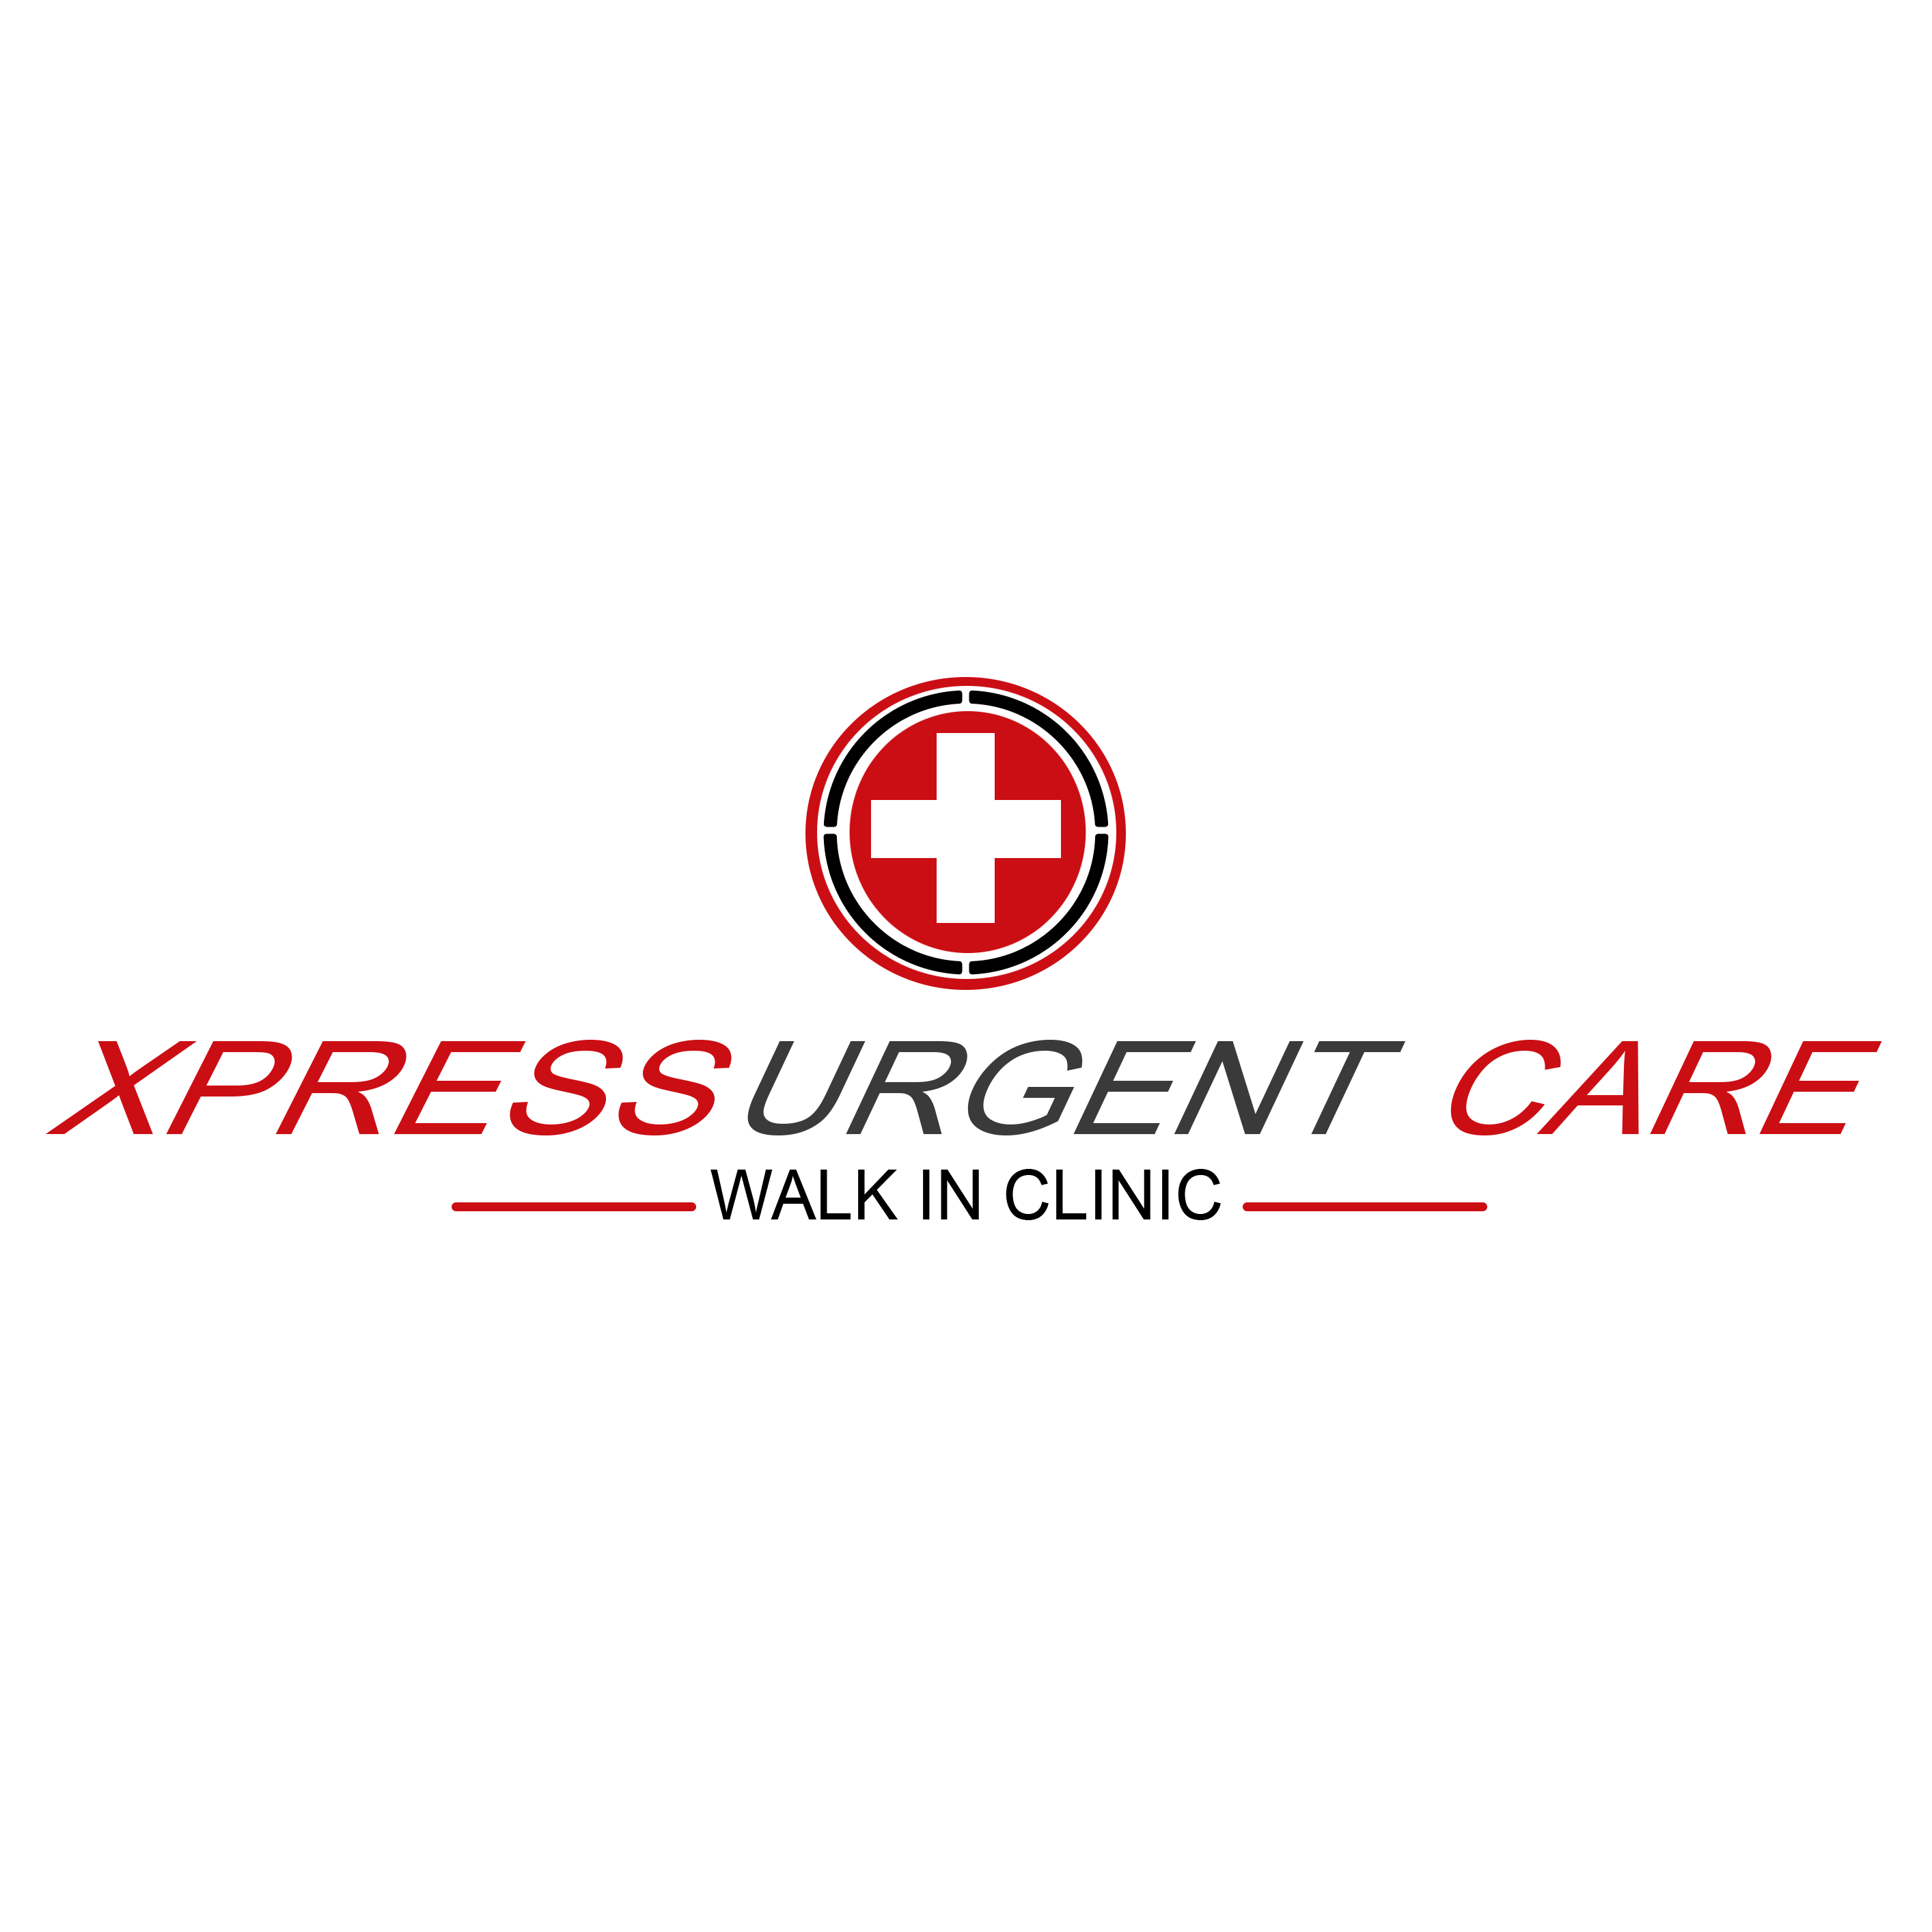 Xpress Urgent Care